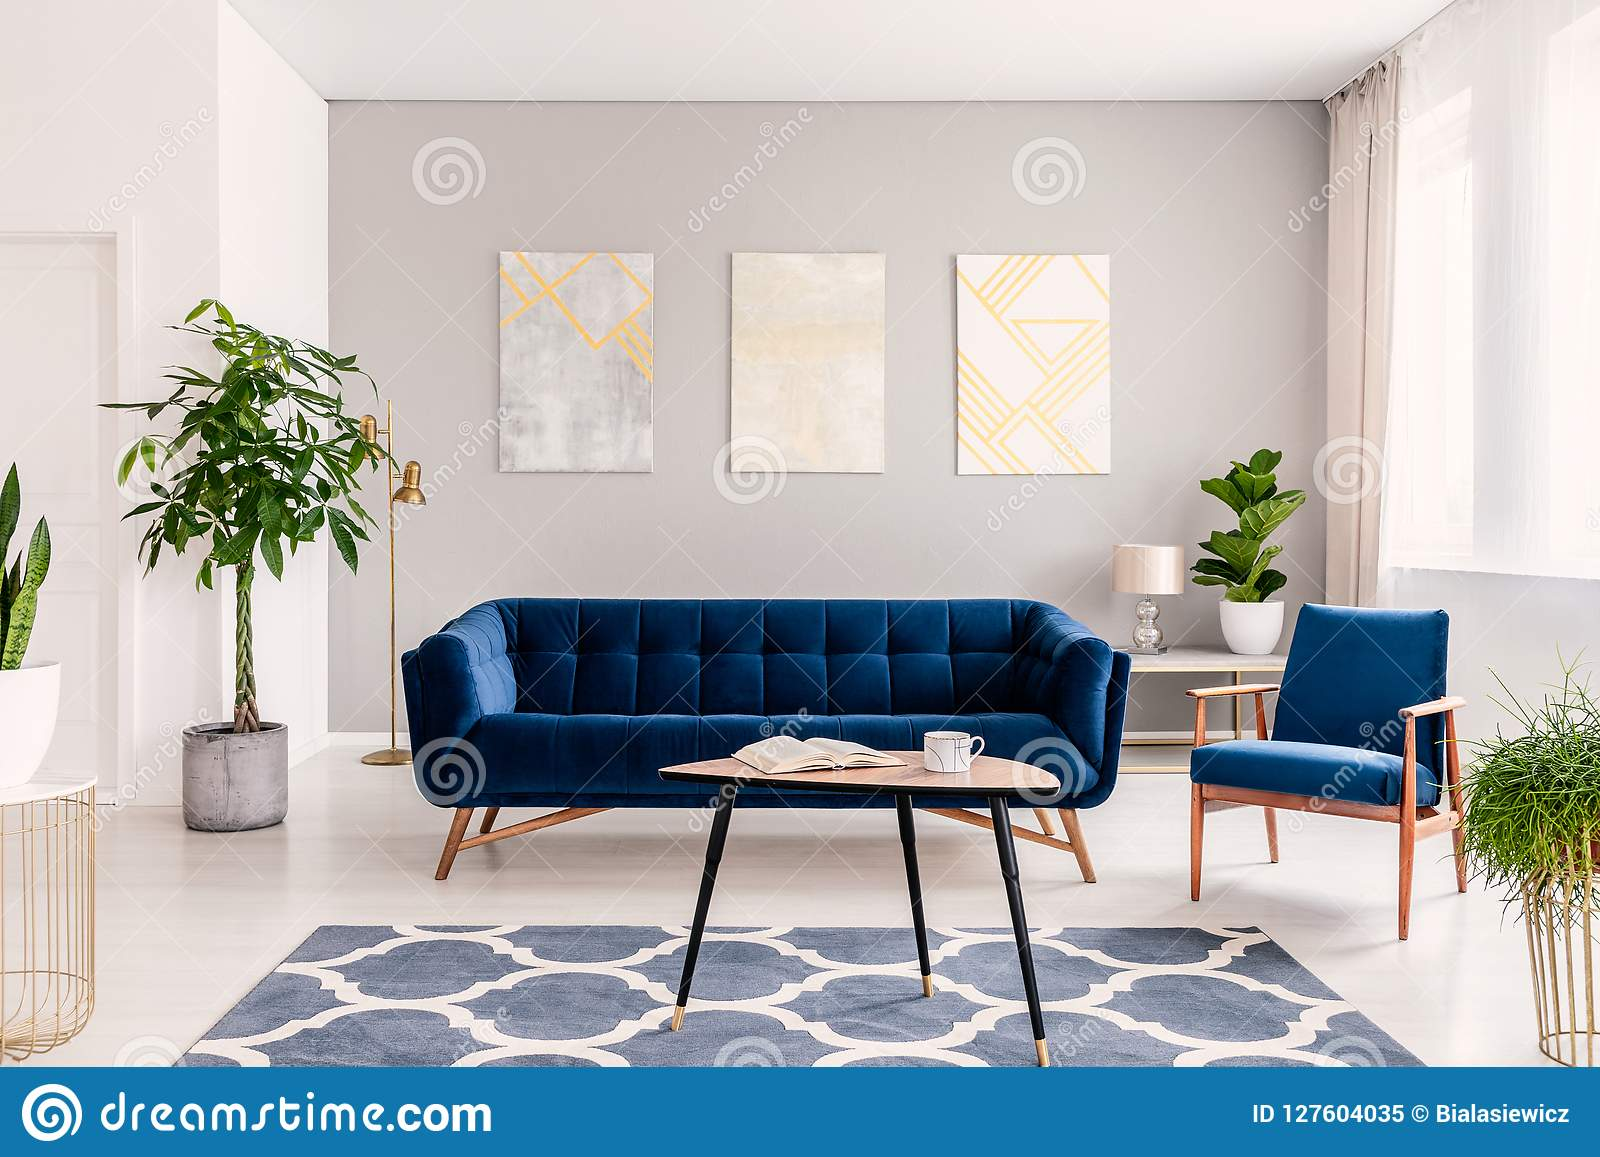 Elegant living room interior with a set of dark blue sofa and armchair. Gold and silver contemporary paintings on the background w